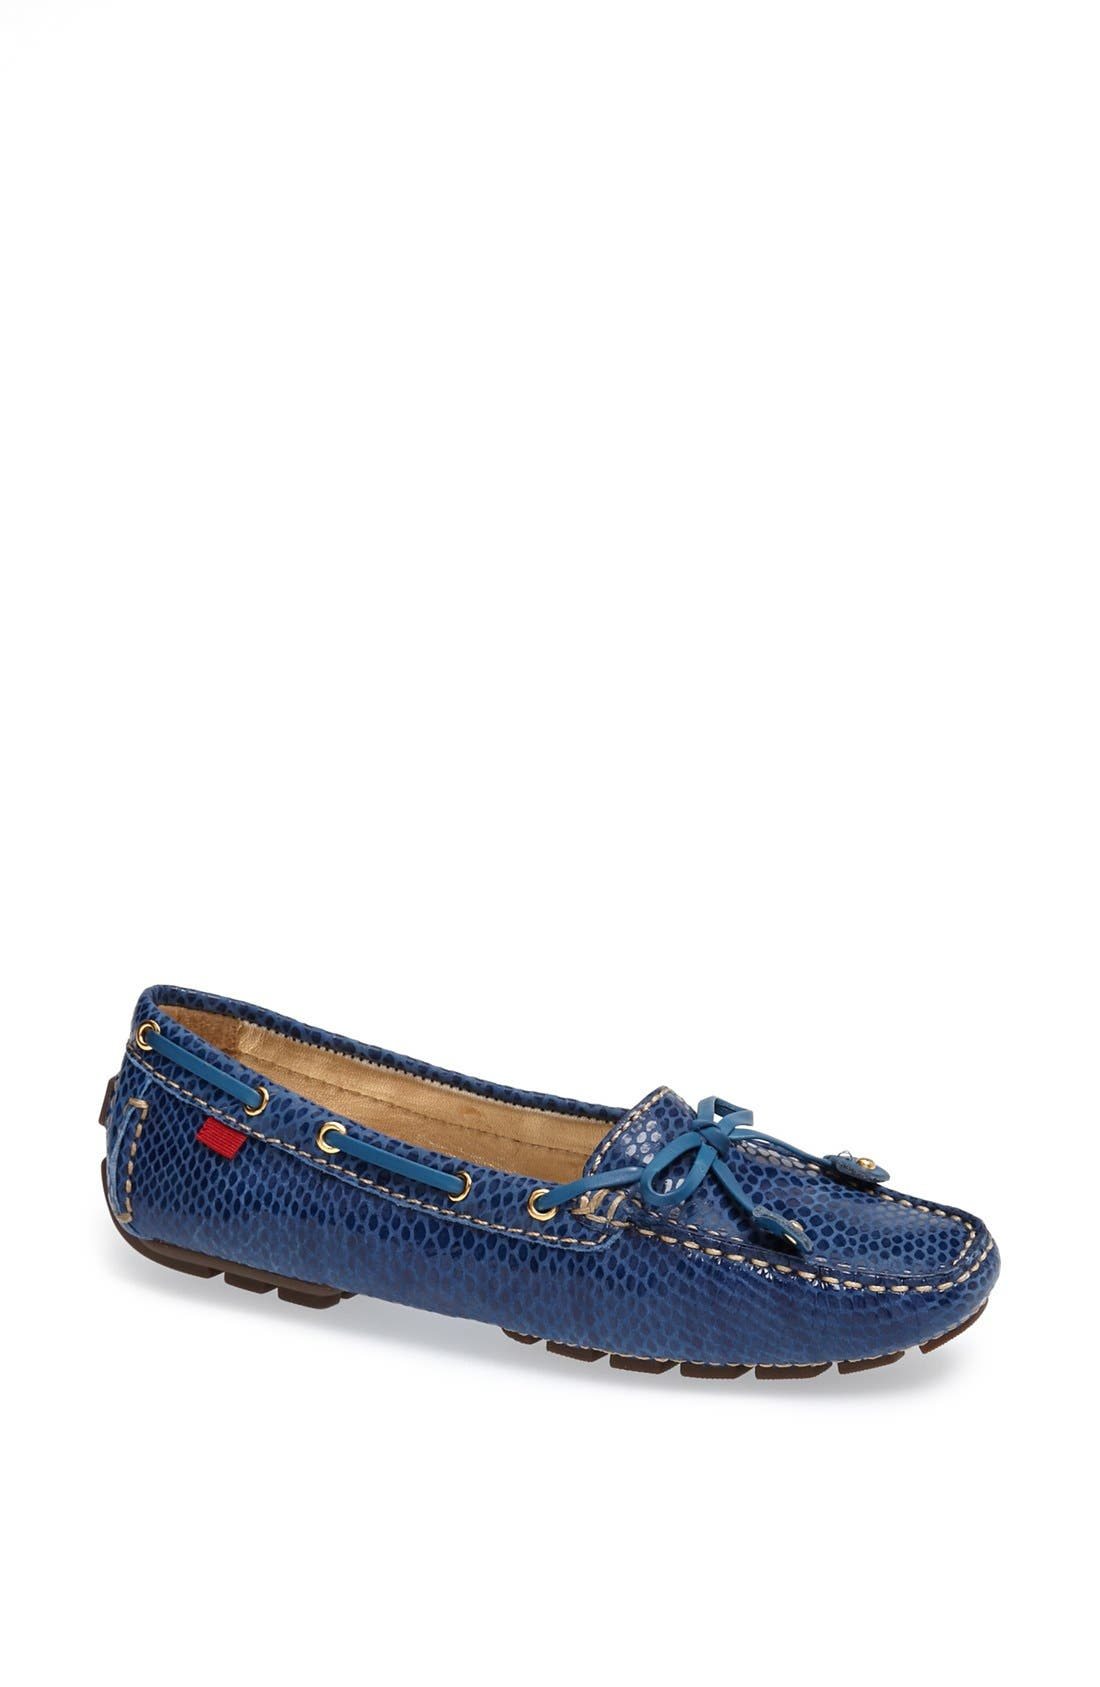 Alternate Image 1 Selected - Marc Joseph New York 'Cypress Hill Snakes' Loafer